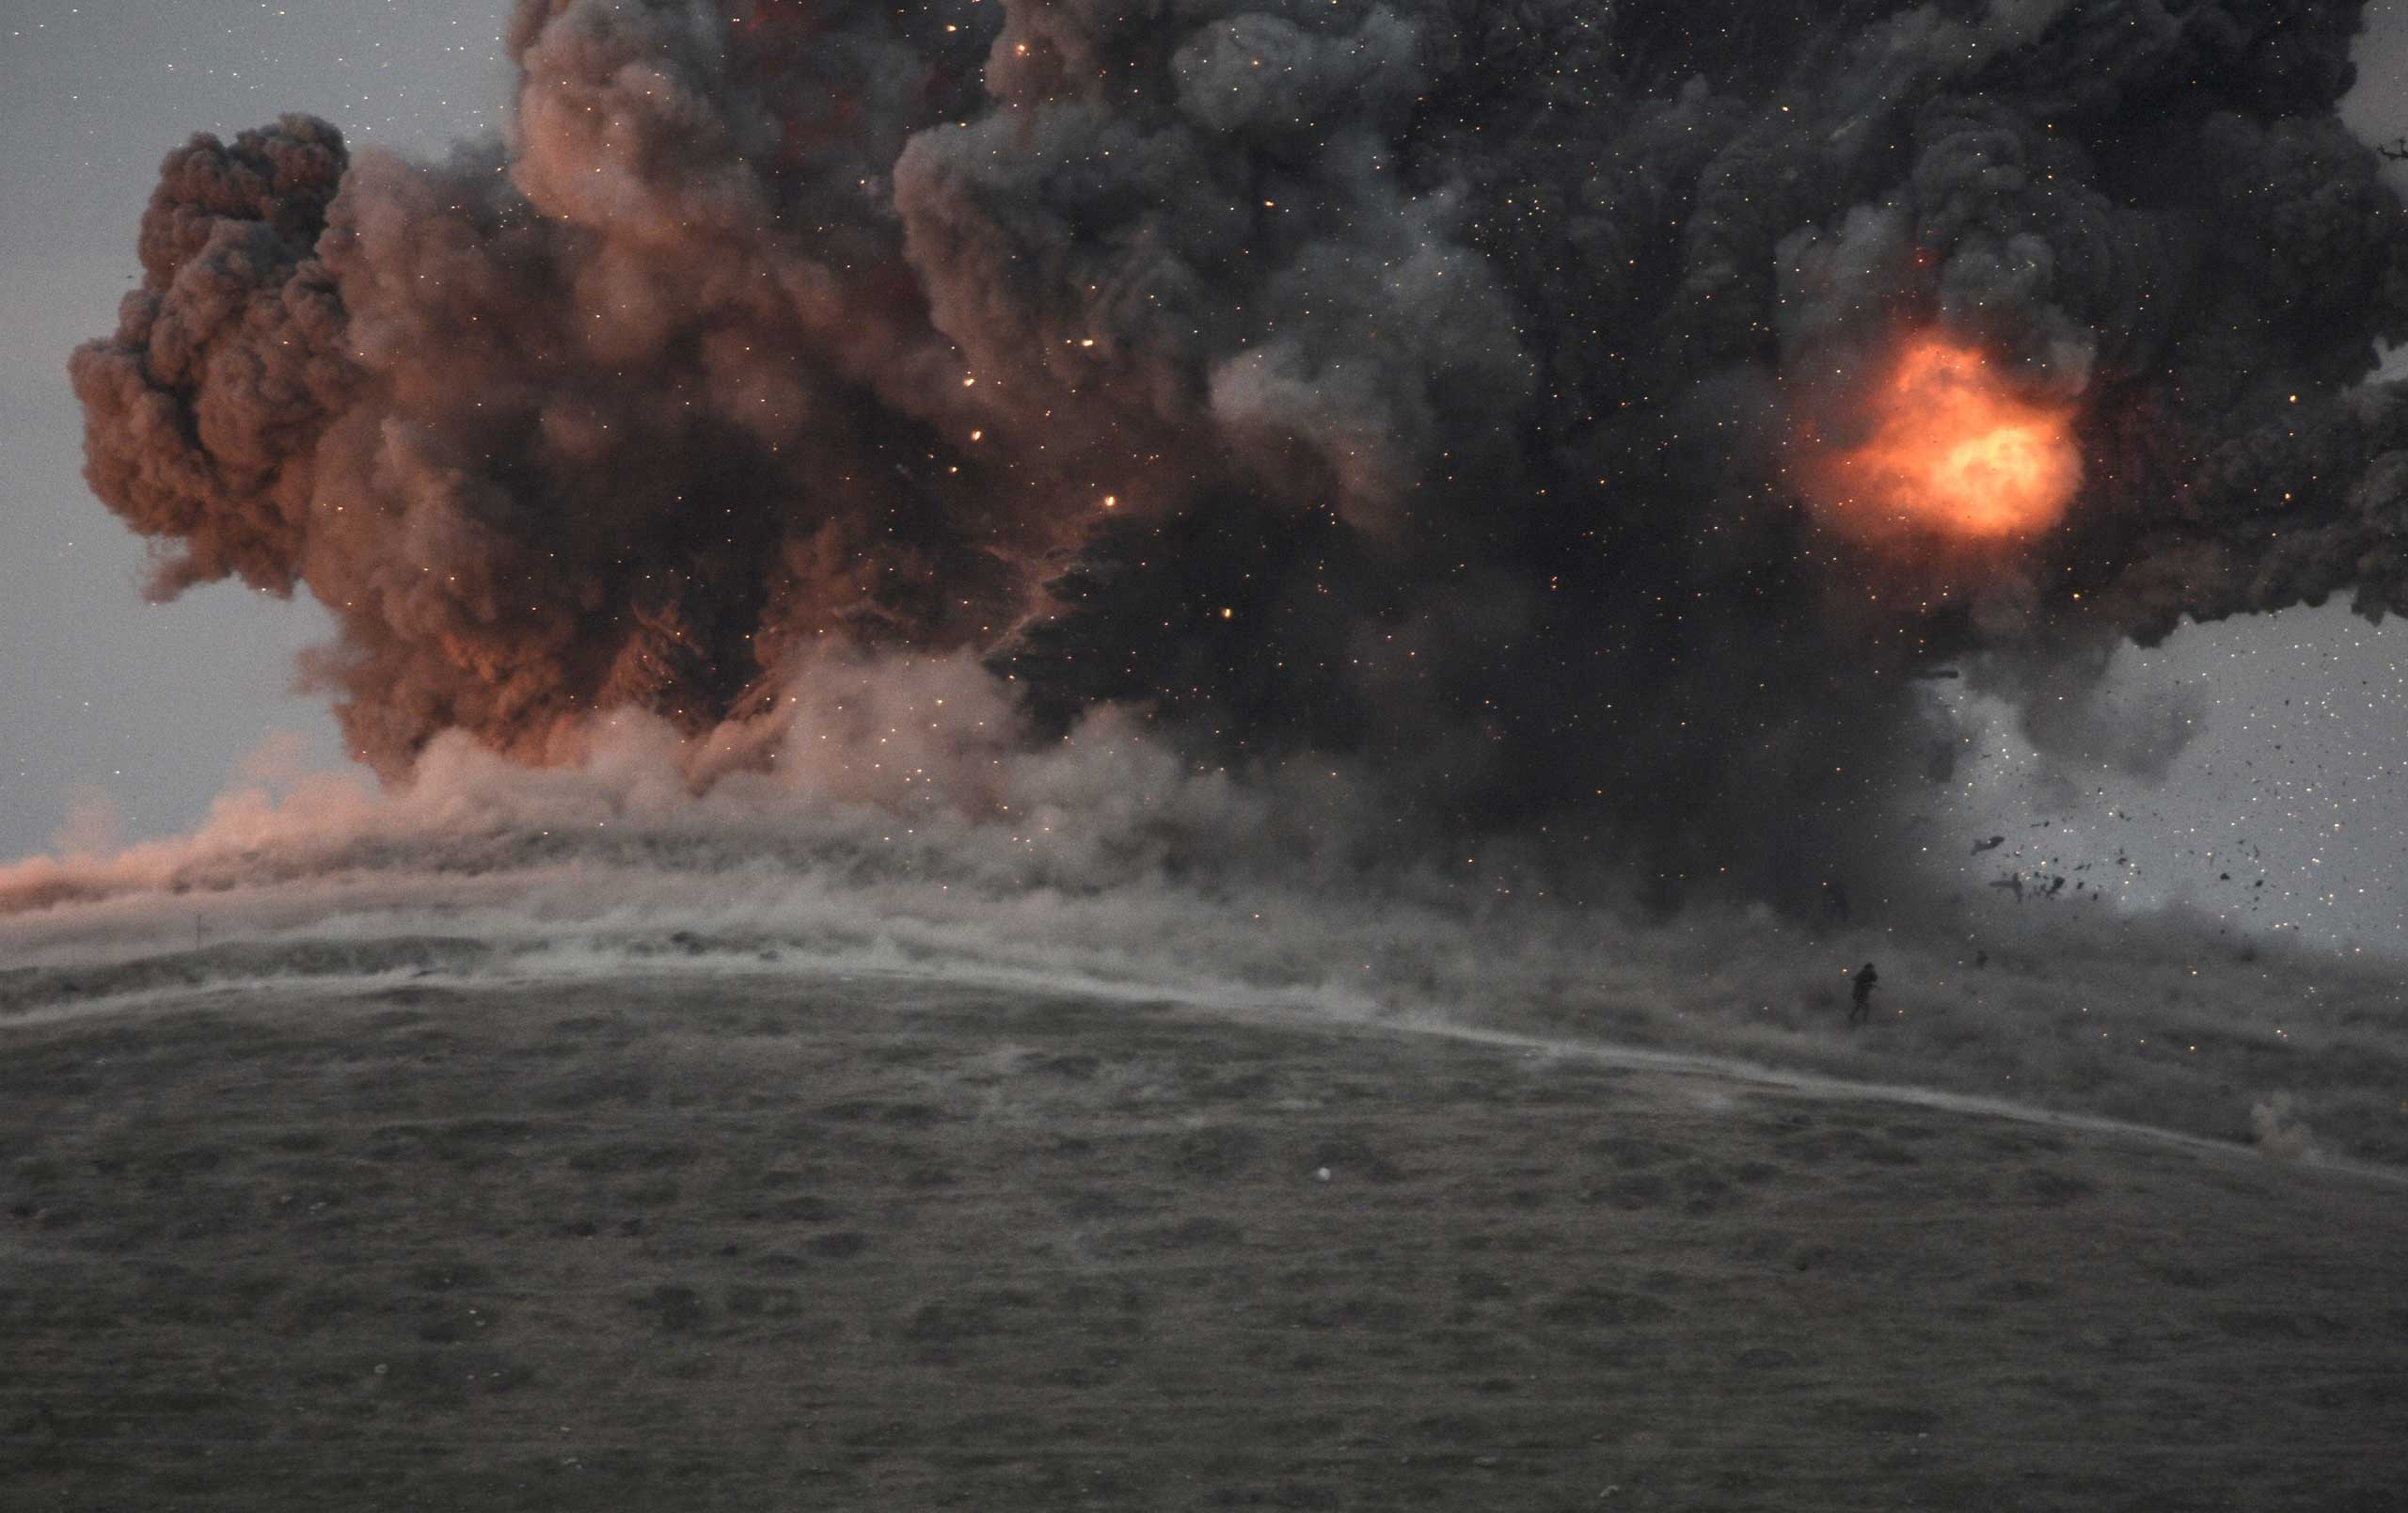 Militants of Islamic State (IS) are seen during an air strike on a hill near the Turkish border on Oct. 23, 2014.